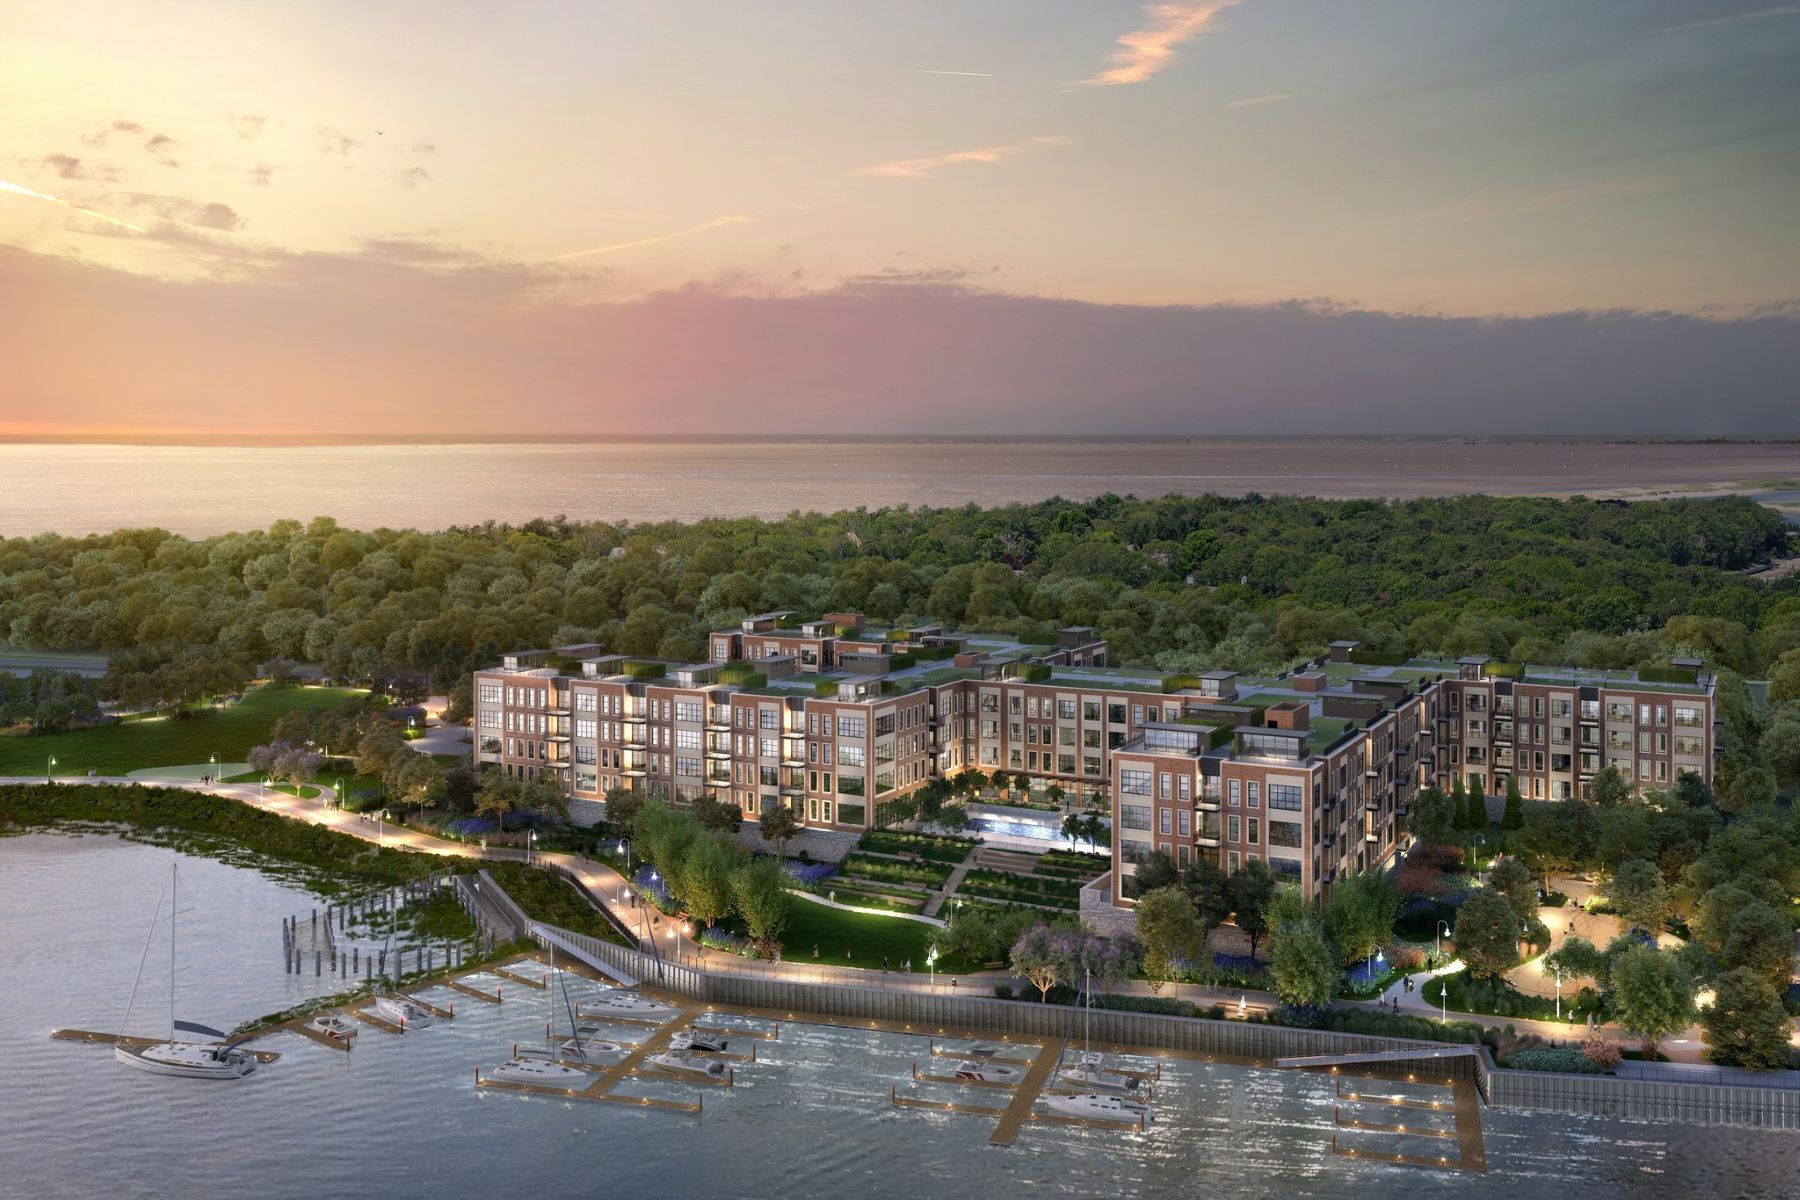 Condominiums for Sale at 100 Garvies Point Rd , 1241, Glen Cove, NY 11542 100 Garvies Point Rd 1241 Glen Cove, New York 11542 United States